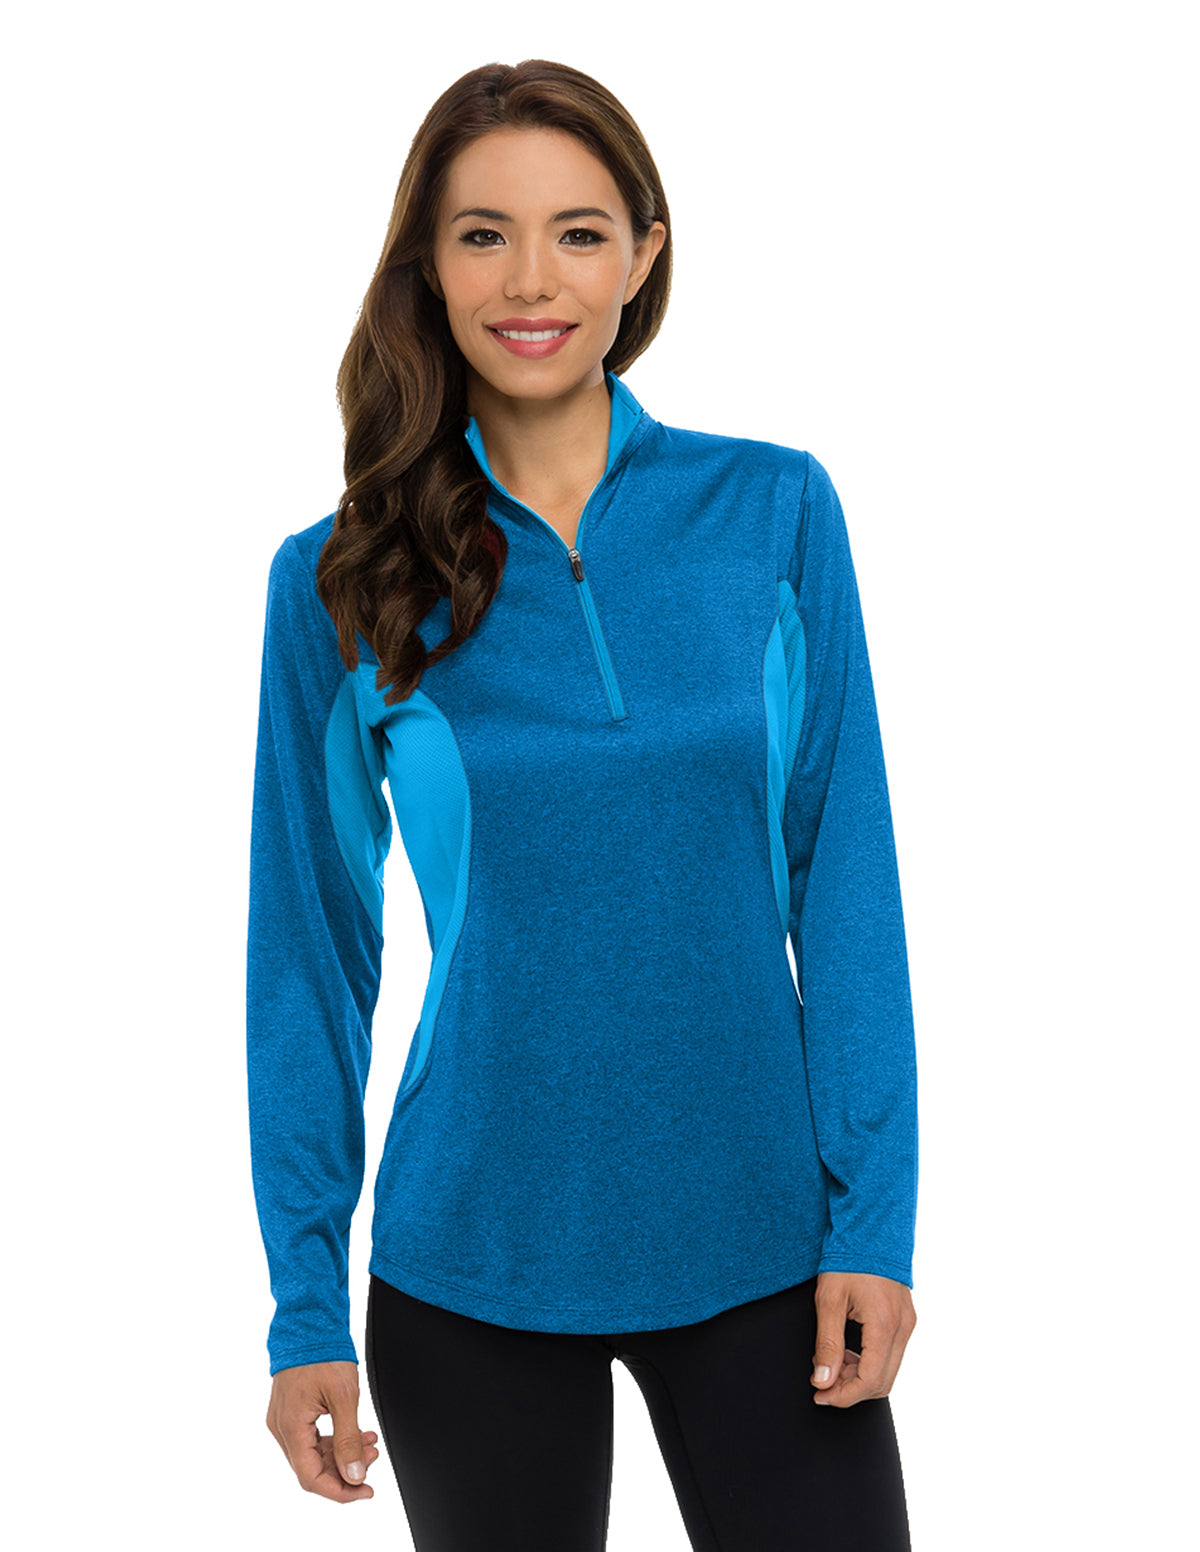 Lady Sprinter-Womens 5 Oz 100% Polyester Heather Jersey Long Sleeve 172-Zip Pullover Ultracool™ Moisture-Wicking